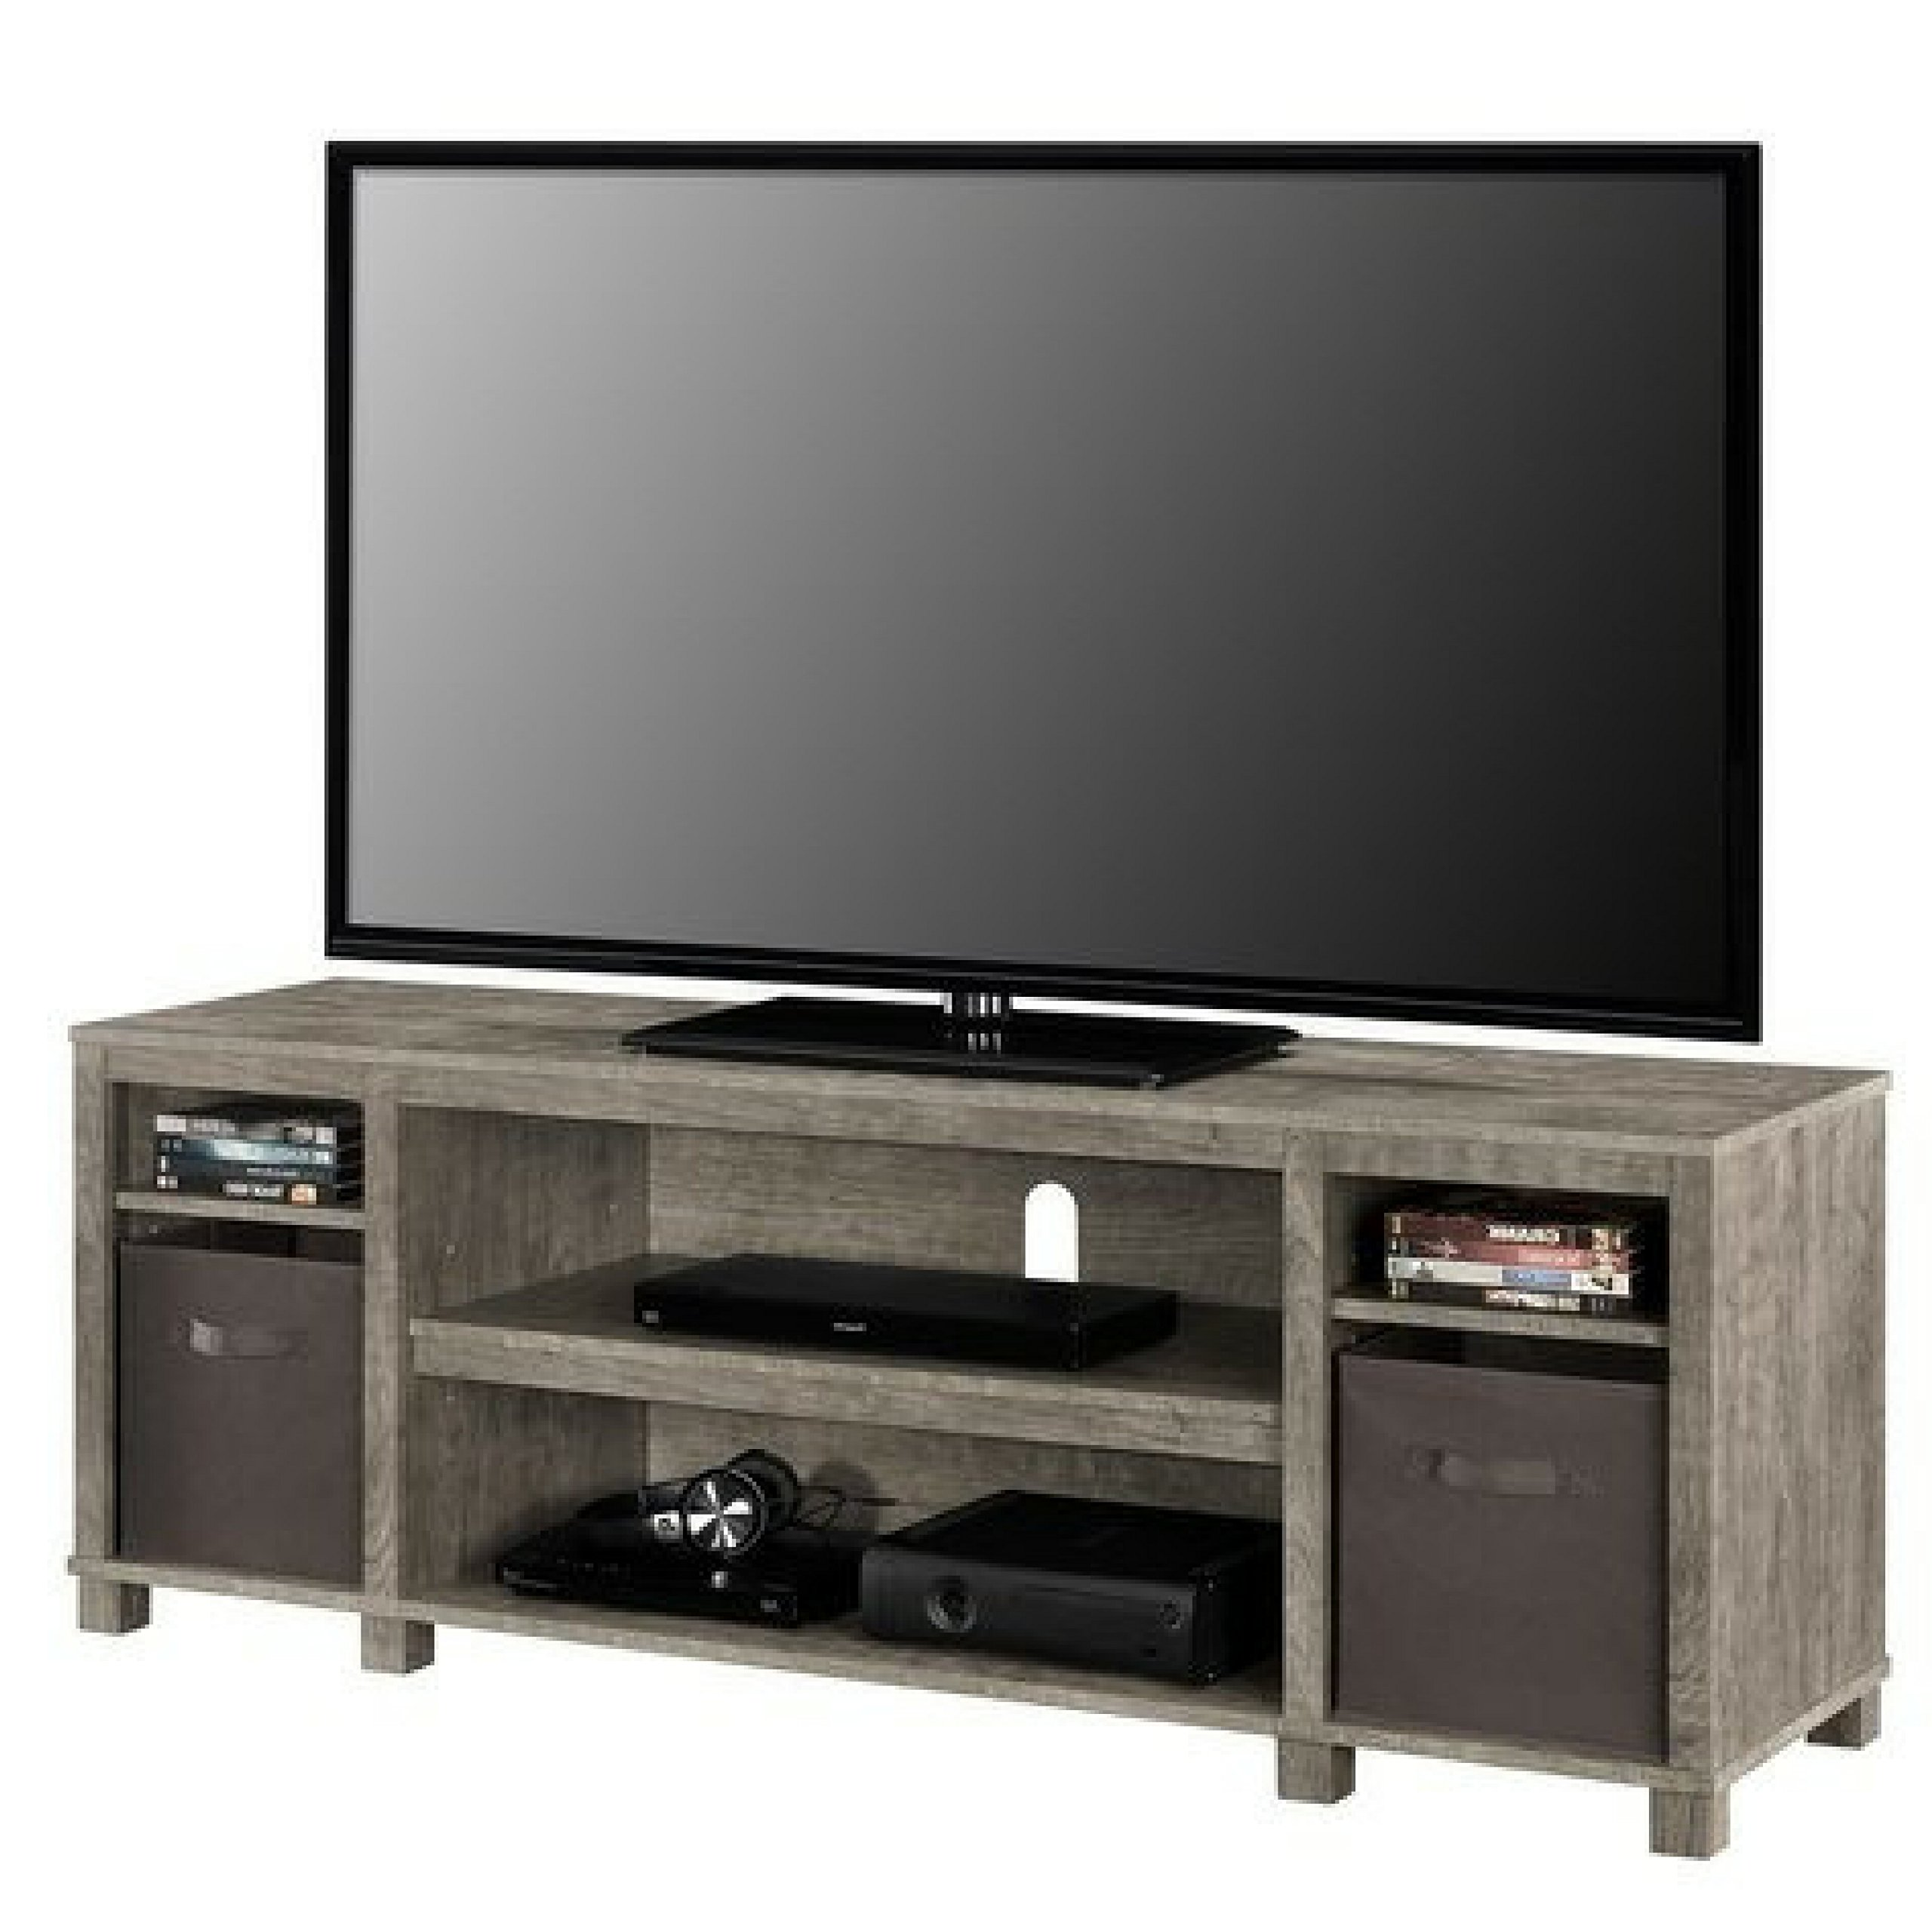 Sleek Classic Design 65'' Open Shelves Grey TV Stand with Non-Woven Fabric Bins